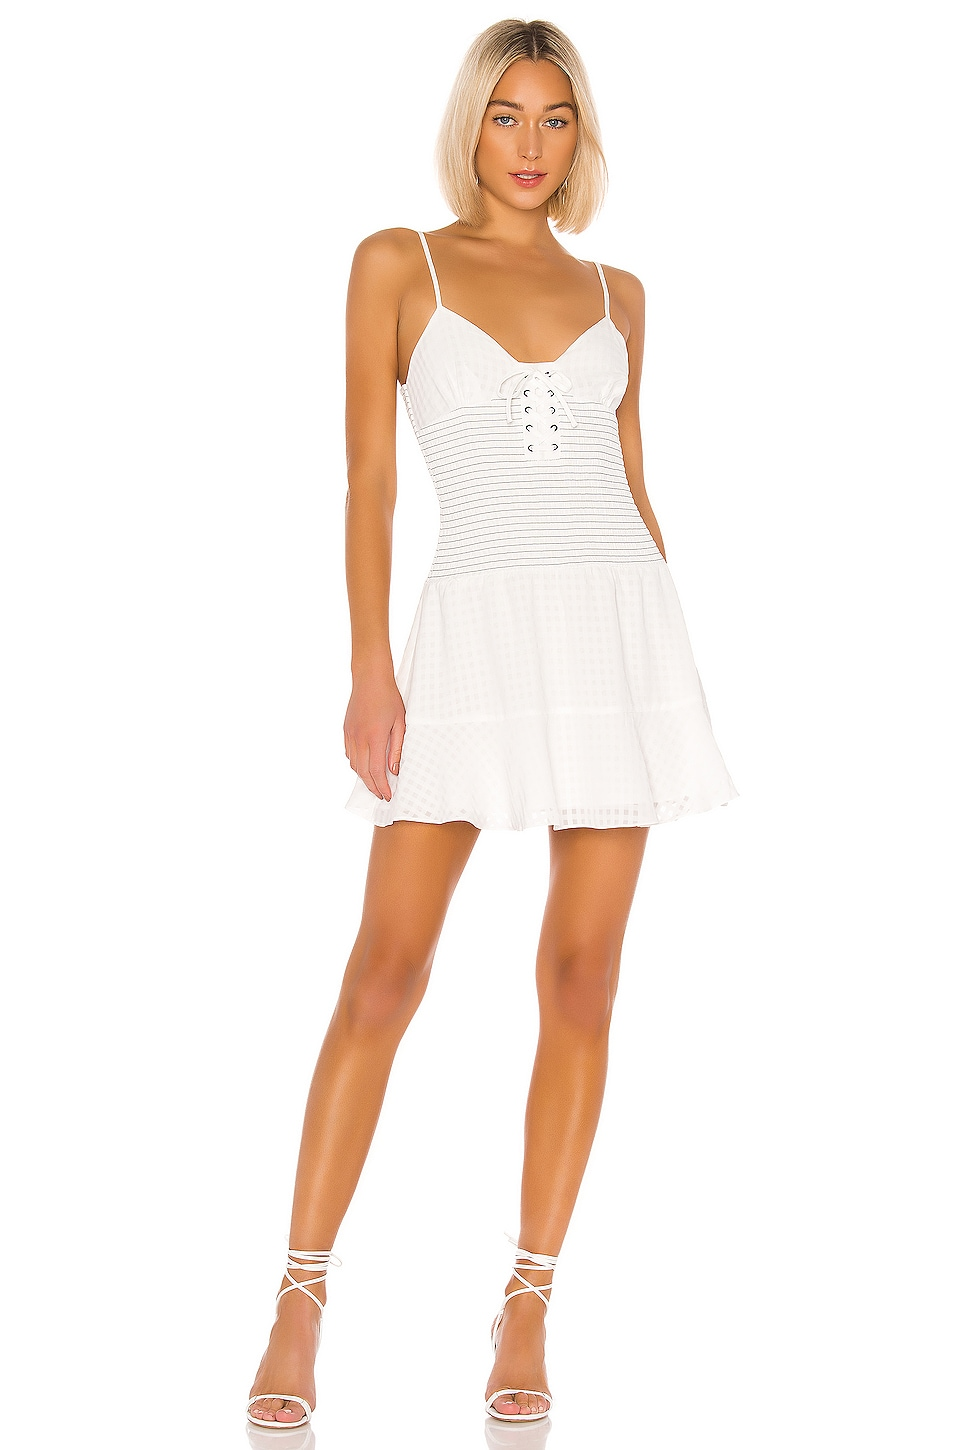 The East Order Chance Mini Dress in White